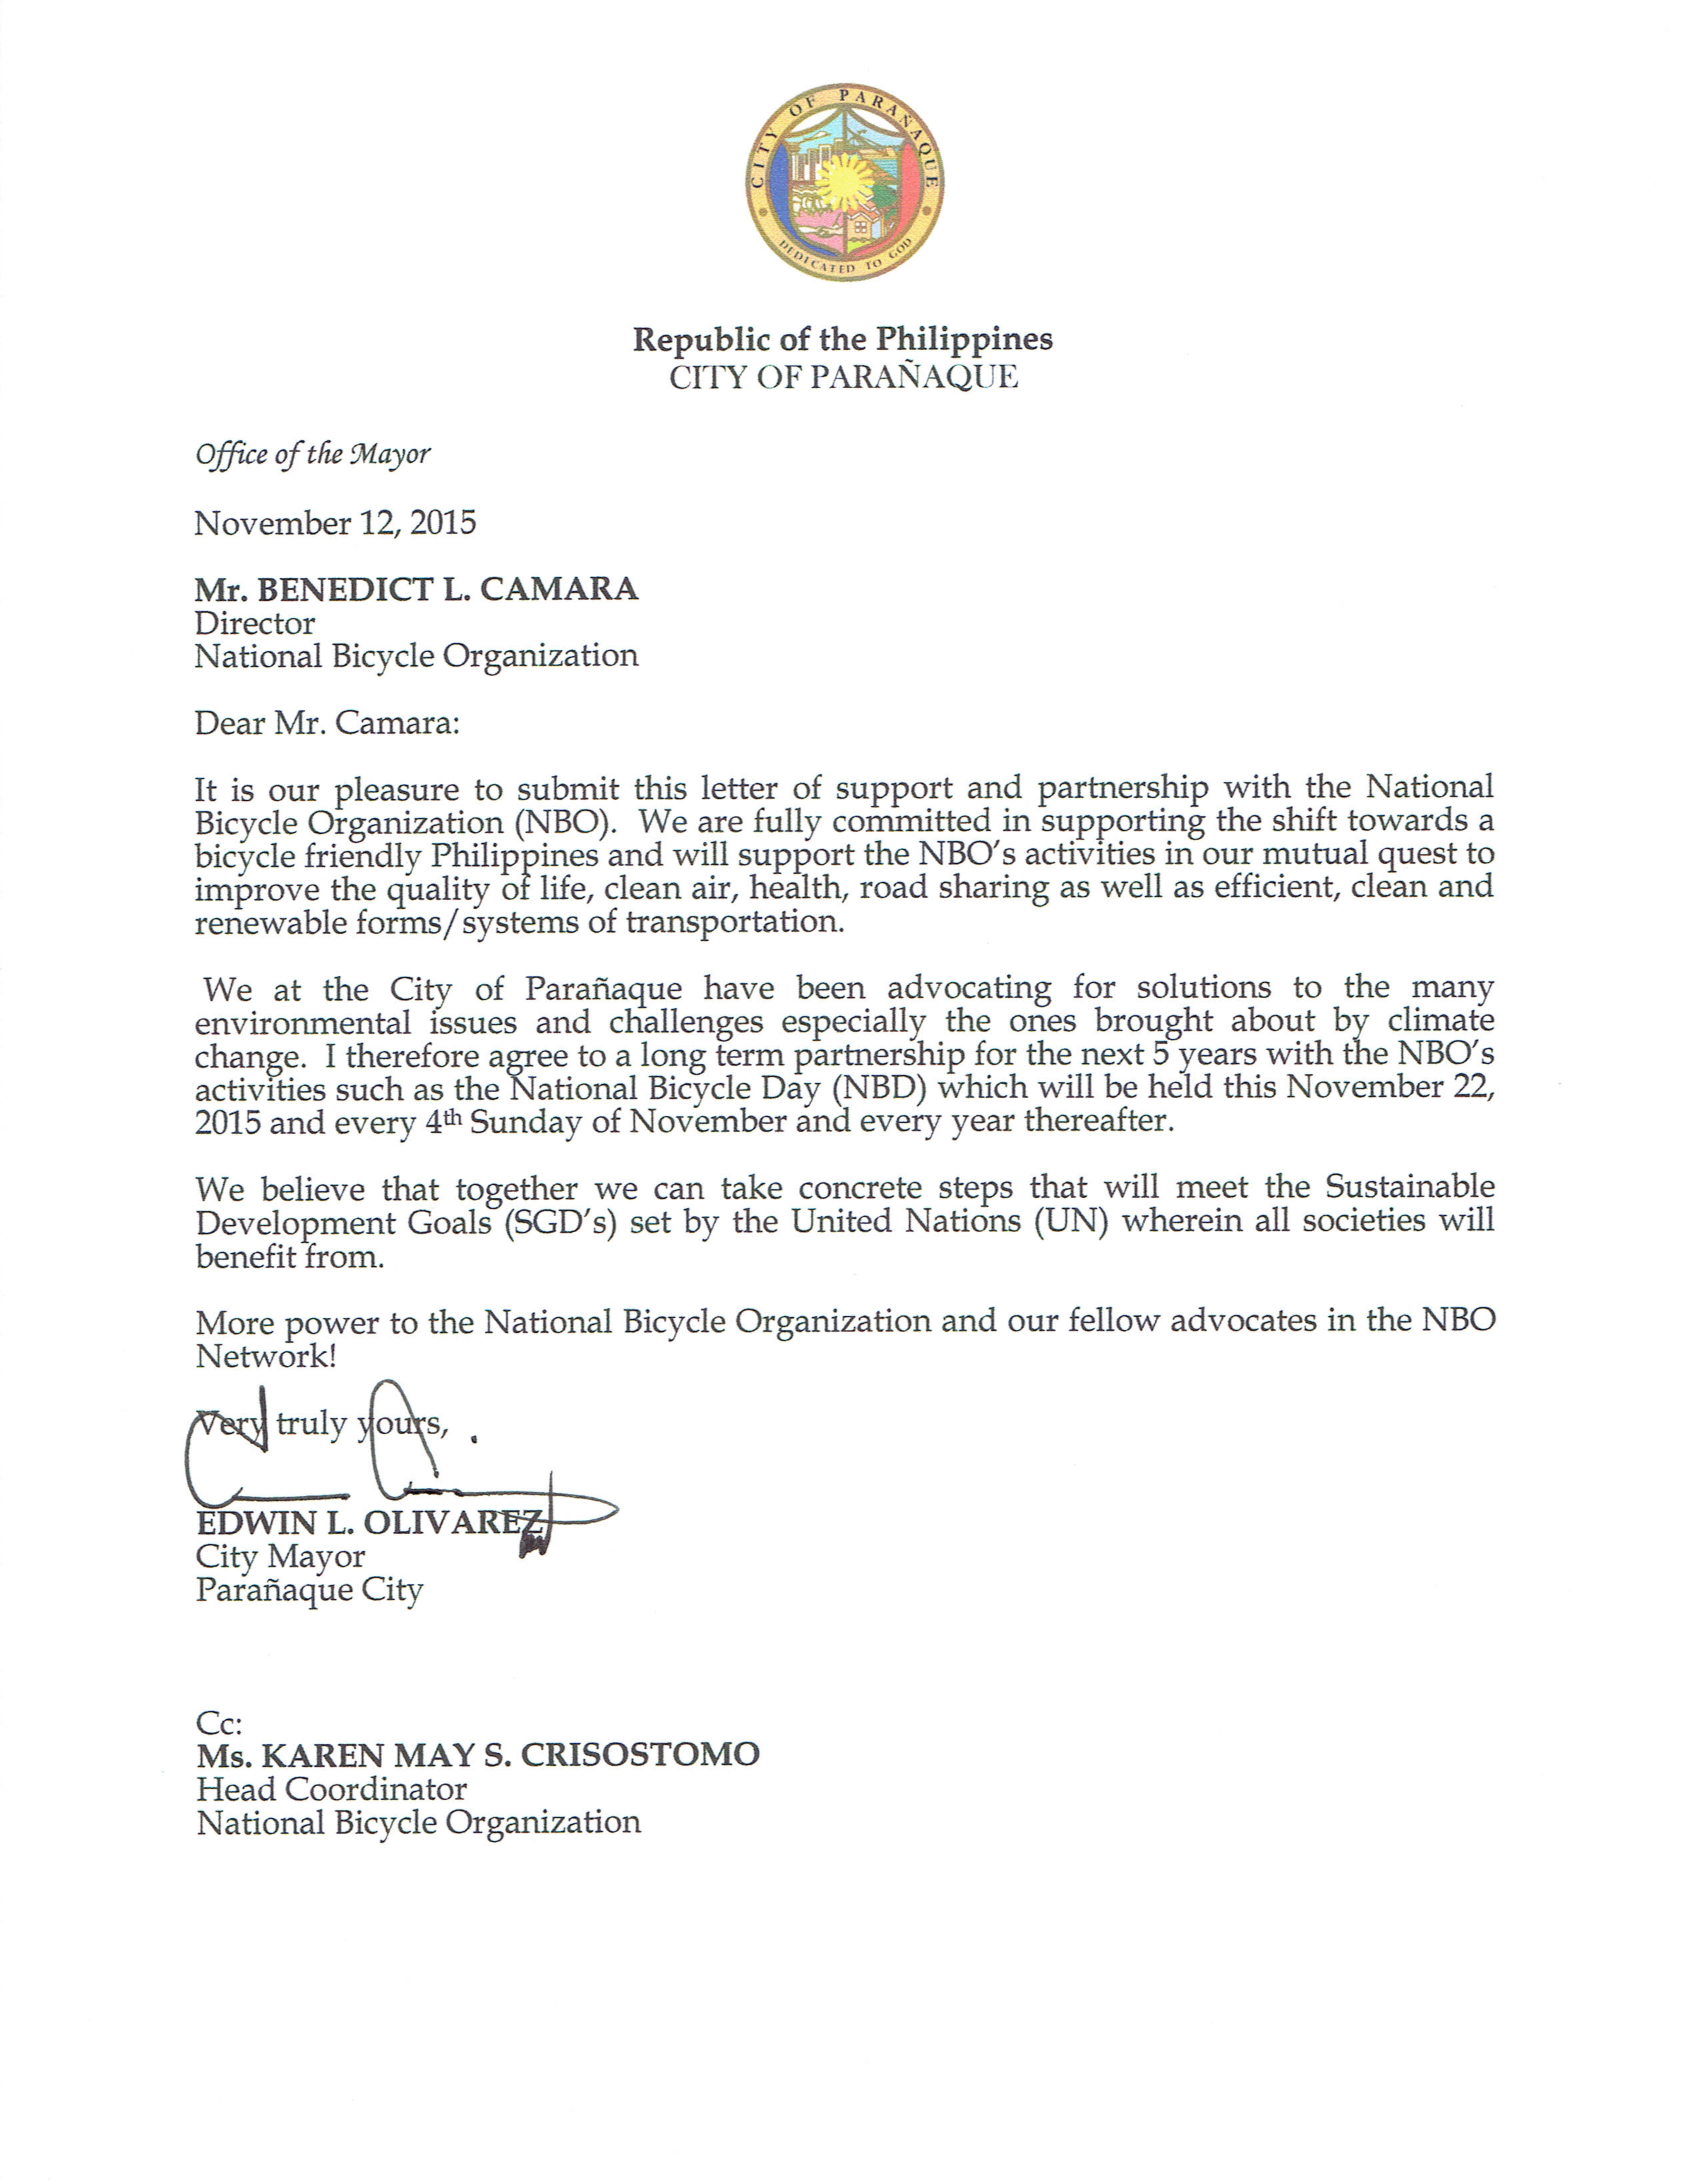 letter of support from paranaque